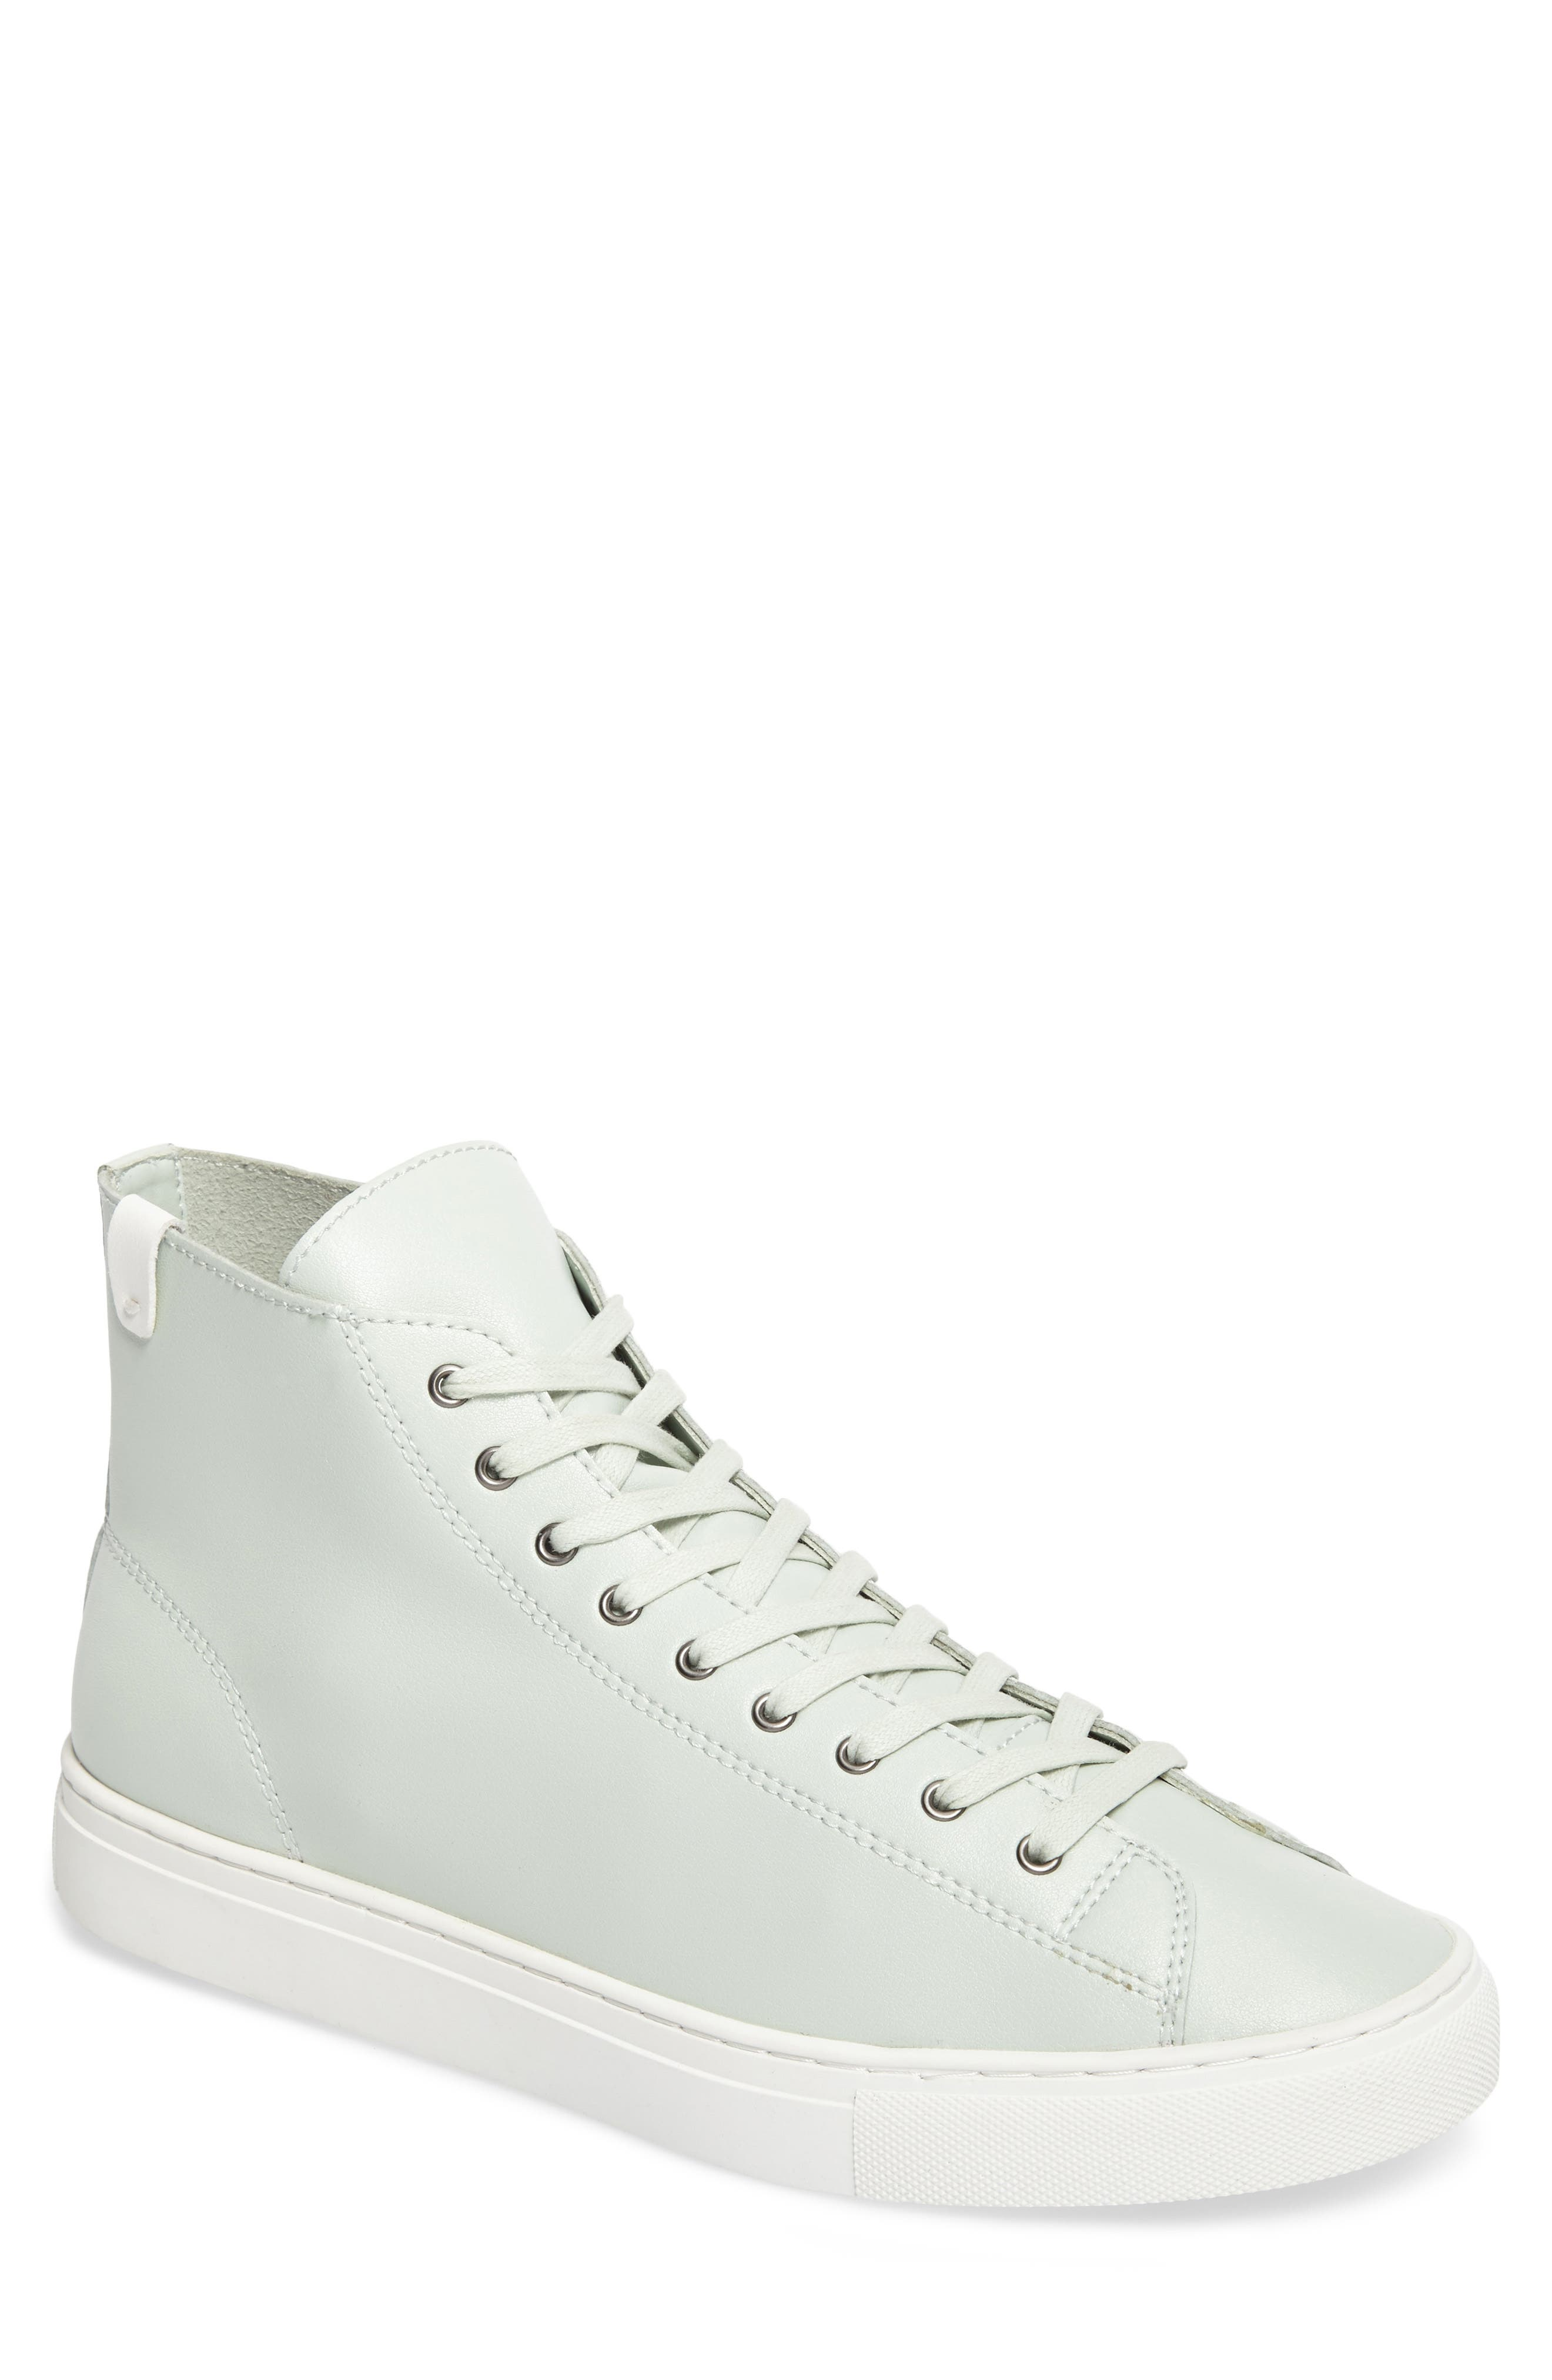 House of Future Original High Top Sneaker (Men)